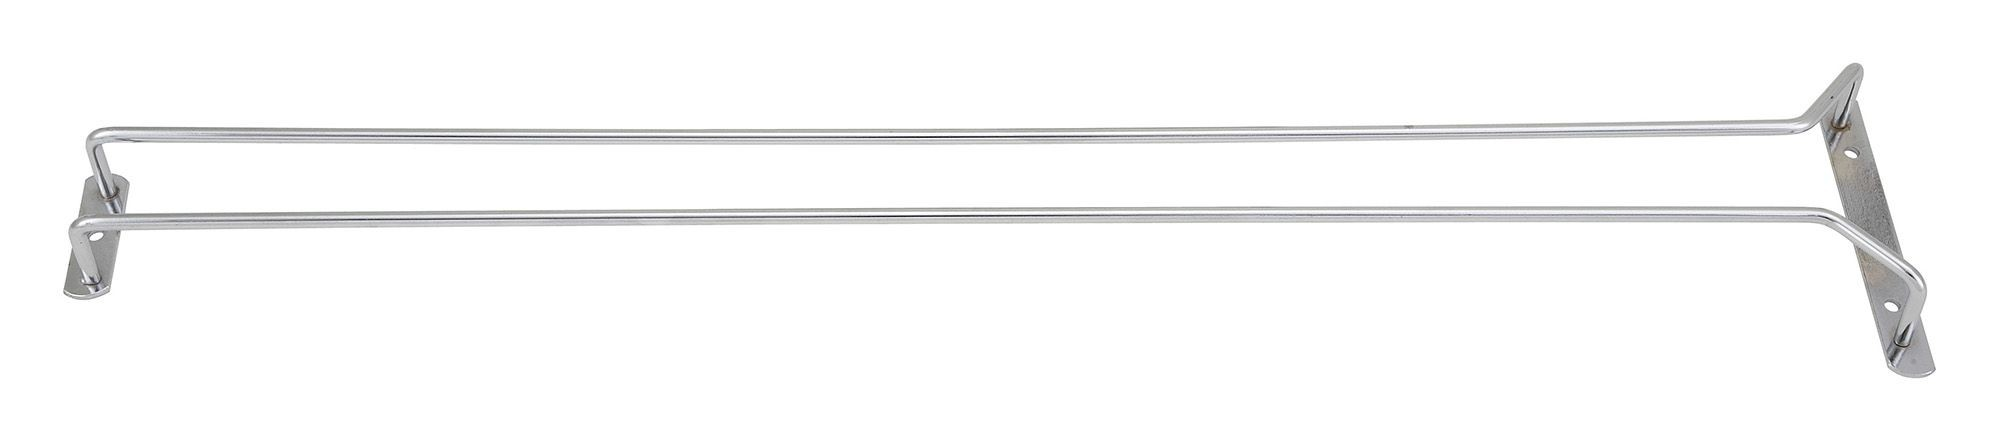 Winco GHC-24 Chrome-Plated Wire Glass Hanger Rack 24""